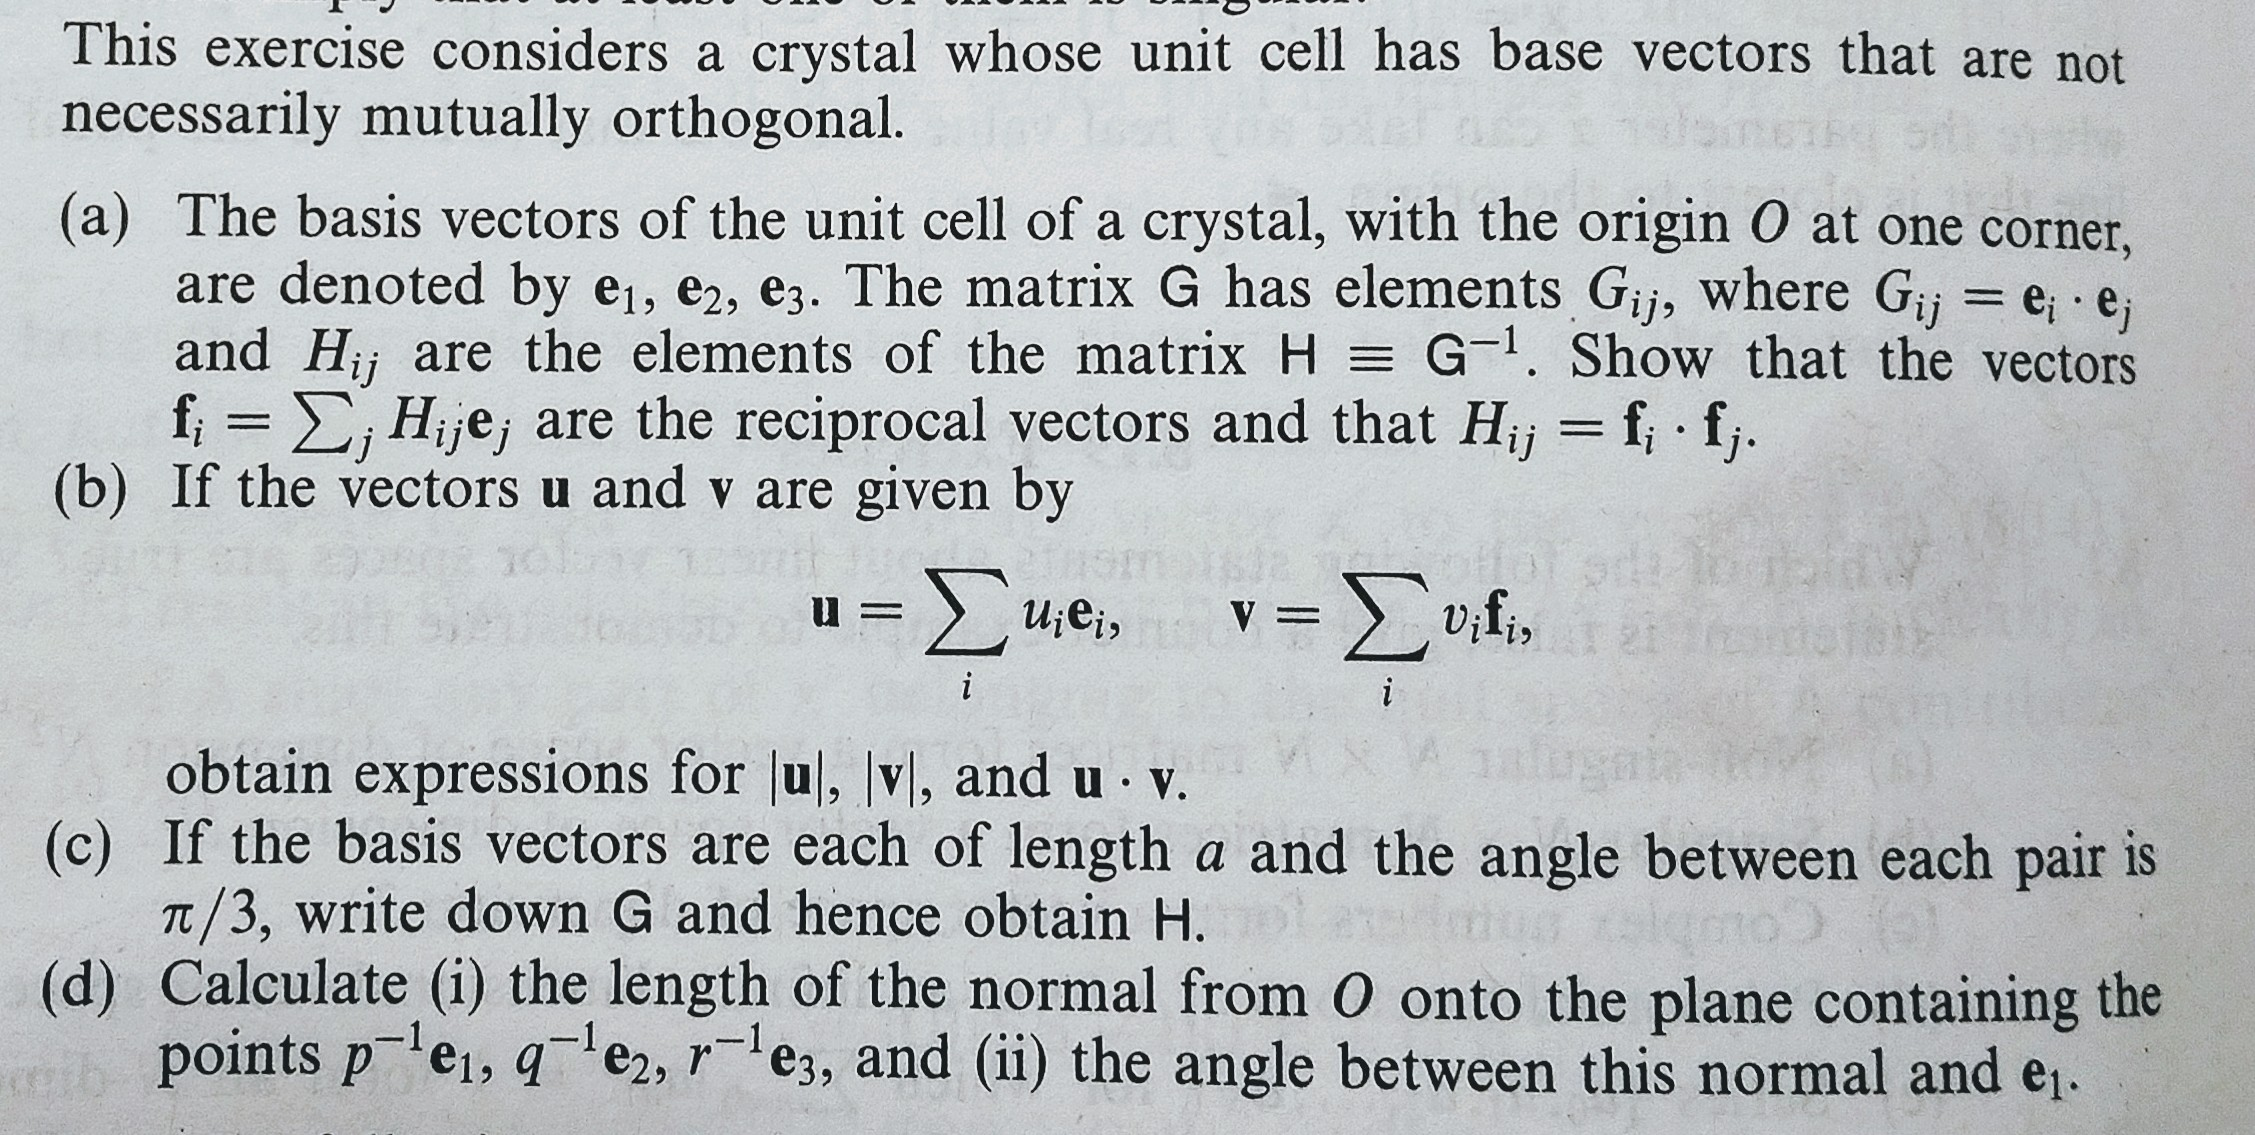 This exercise considers a crystal whose unit cell has base vectors that are not necessarily mutually orthogonal (a) The basis vectors of the unit cell of a crystal, with the origin O at one corner, are denoted by ei, e2 , ез. The matrix G has elements Gijs where Gij ei-ej and Hj are the elements of the matrix HG1. Show that the vectors f , Hije, are the reciprocal vectors and that Hj f f (b) If the vectors u and v are given by 0 1-1 obtain expressions for lul, vl, and u v. T/3, write down G and hence obtain H. points p ei, qe2, es, and (ii) the angle between this normal and e,. (c) If the basis vectors are each of length a and the angle between each pair is (d) Calculate (i) the length of the normal from O onto the plane containing the